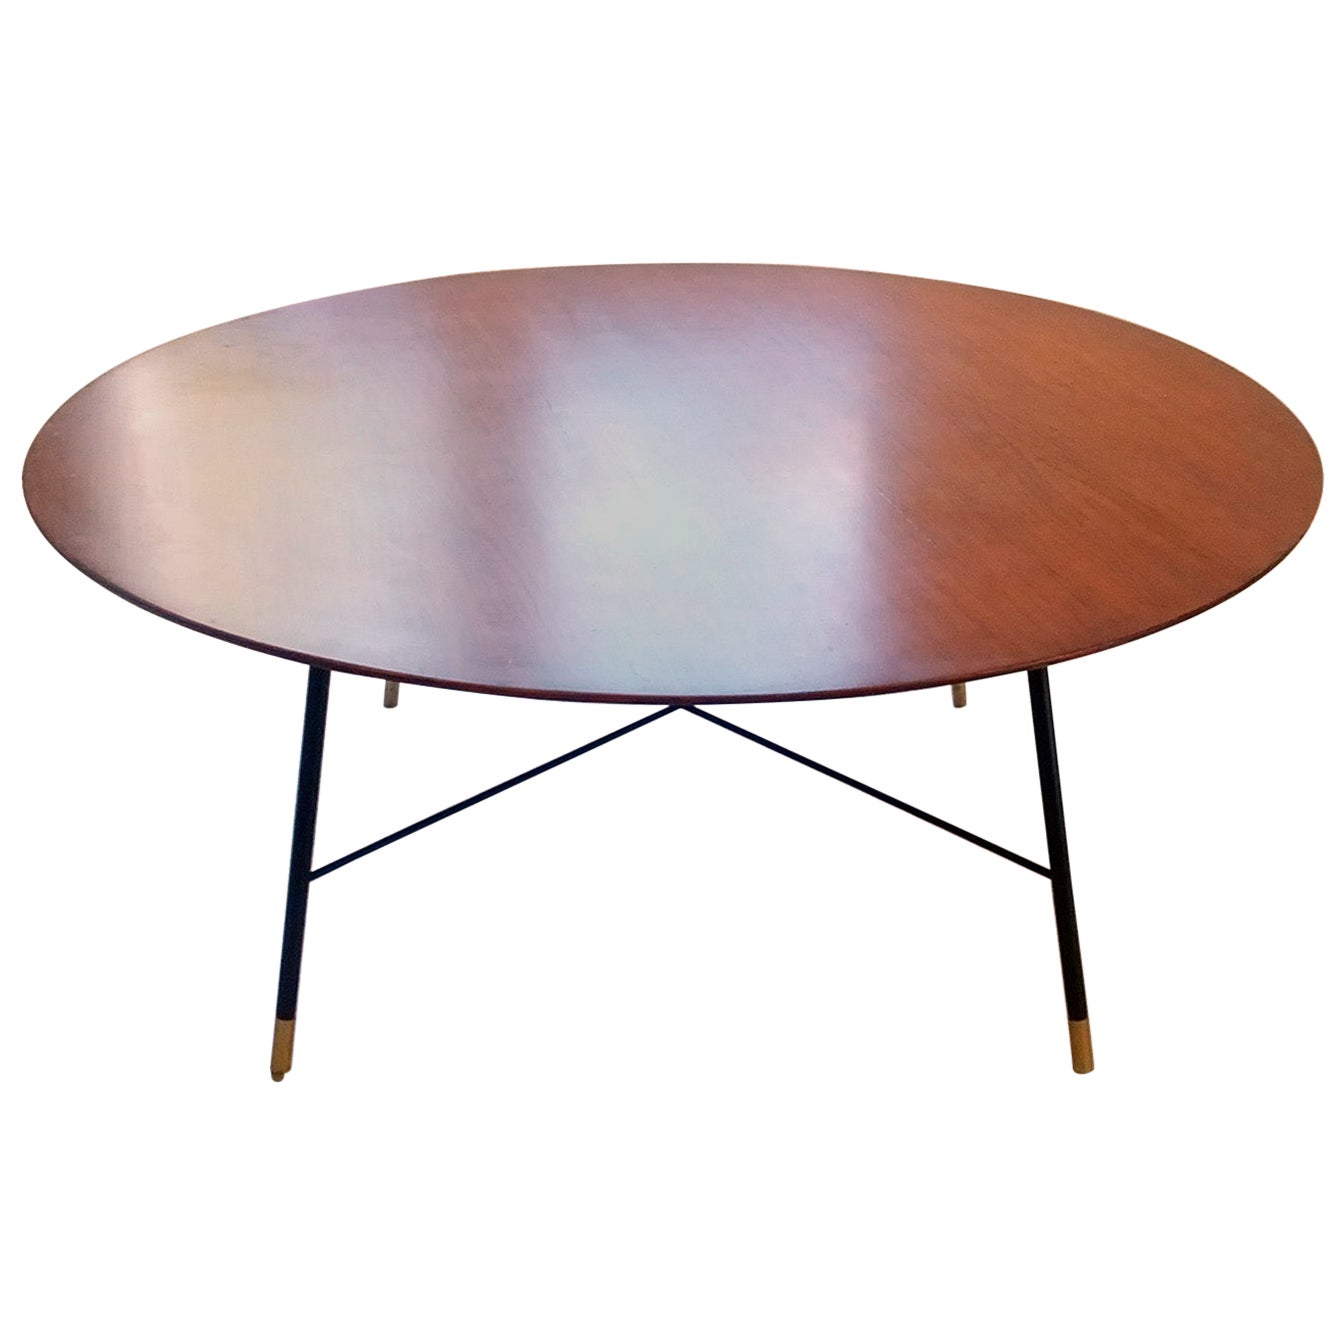 Ico Parisi Round Low Table with Mahogany Top and Brass Feet, Cassina Milano 1955